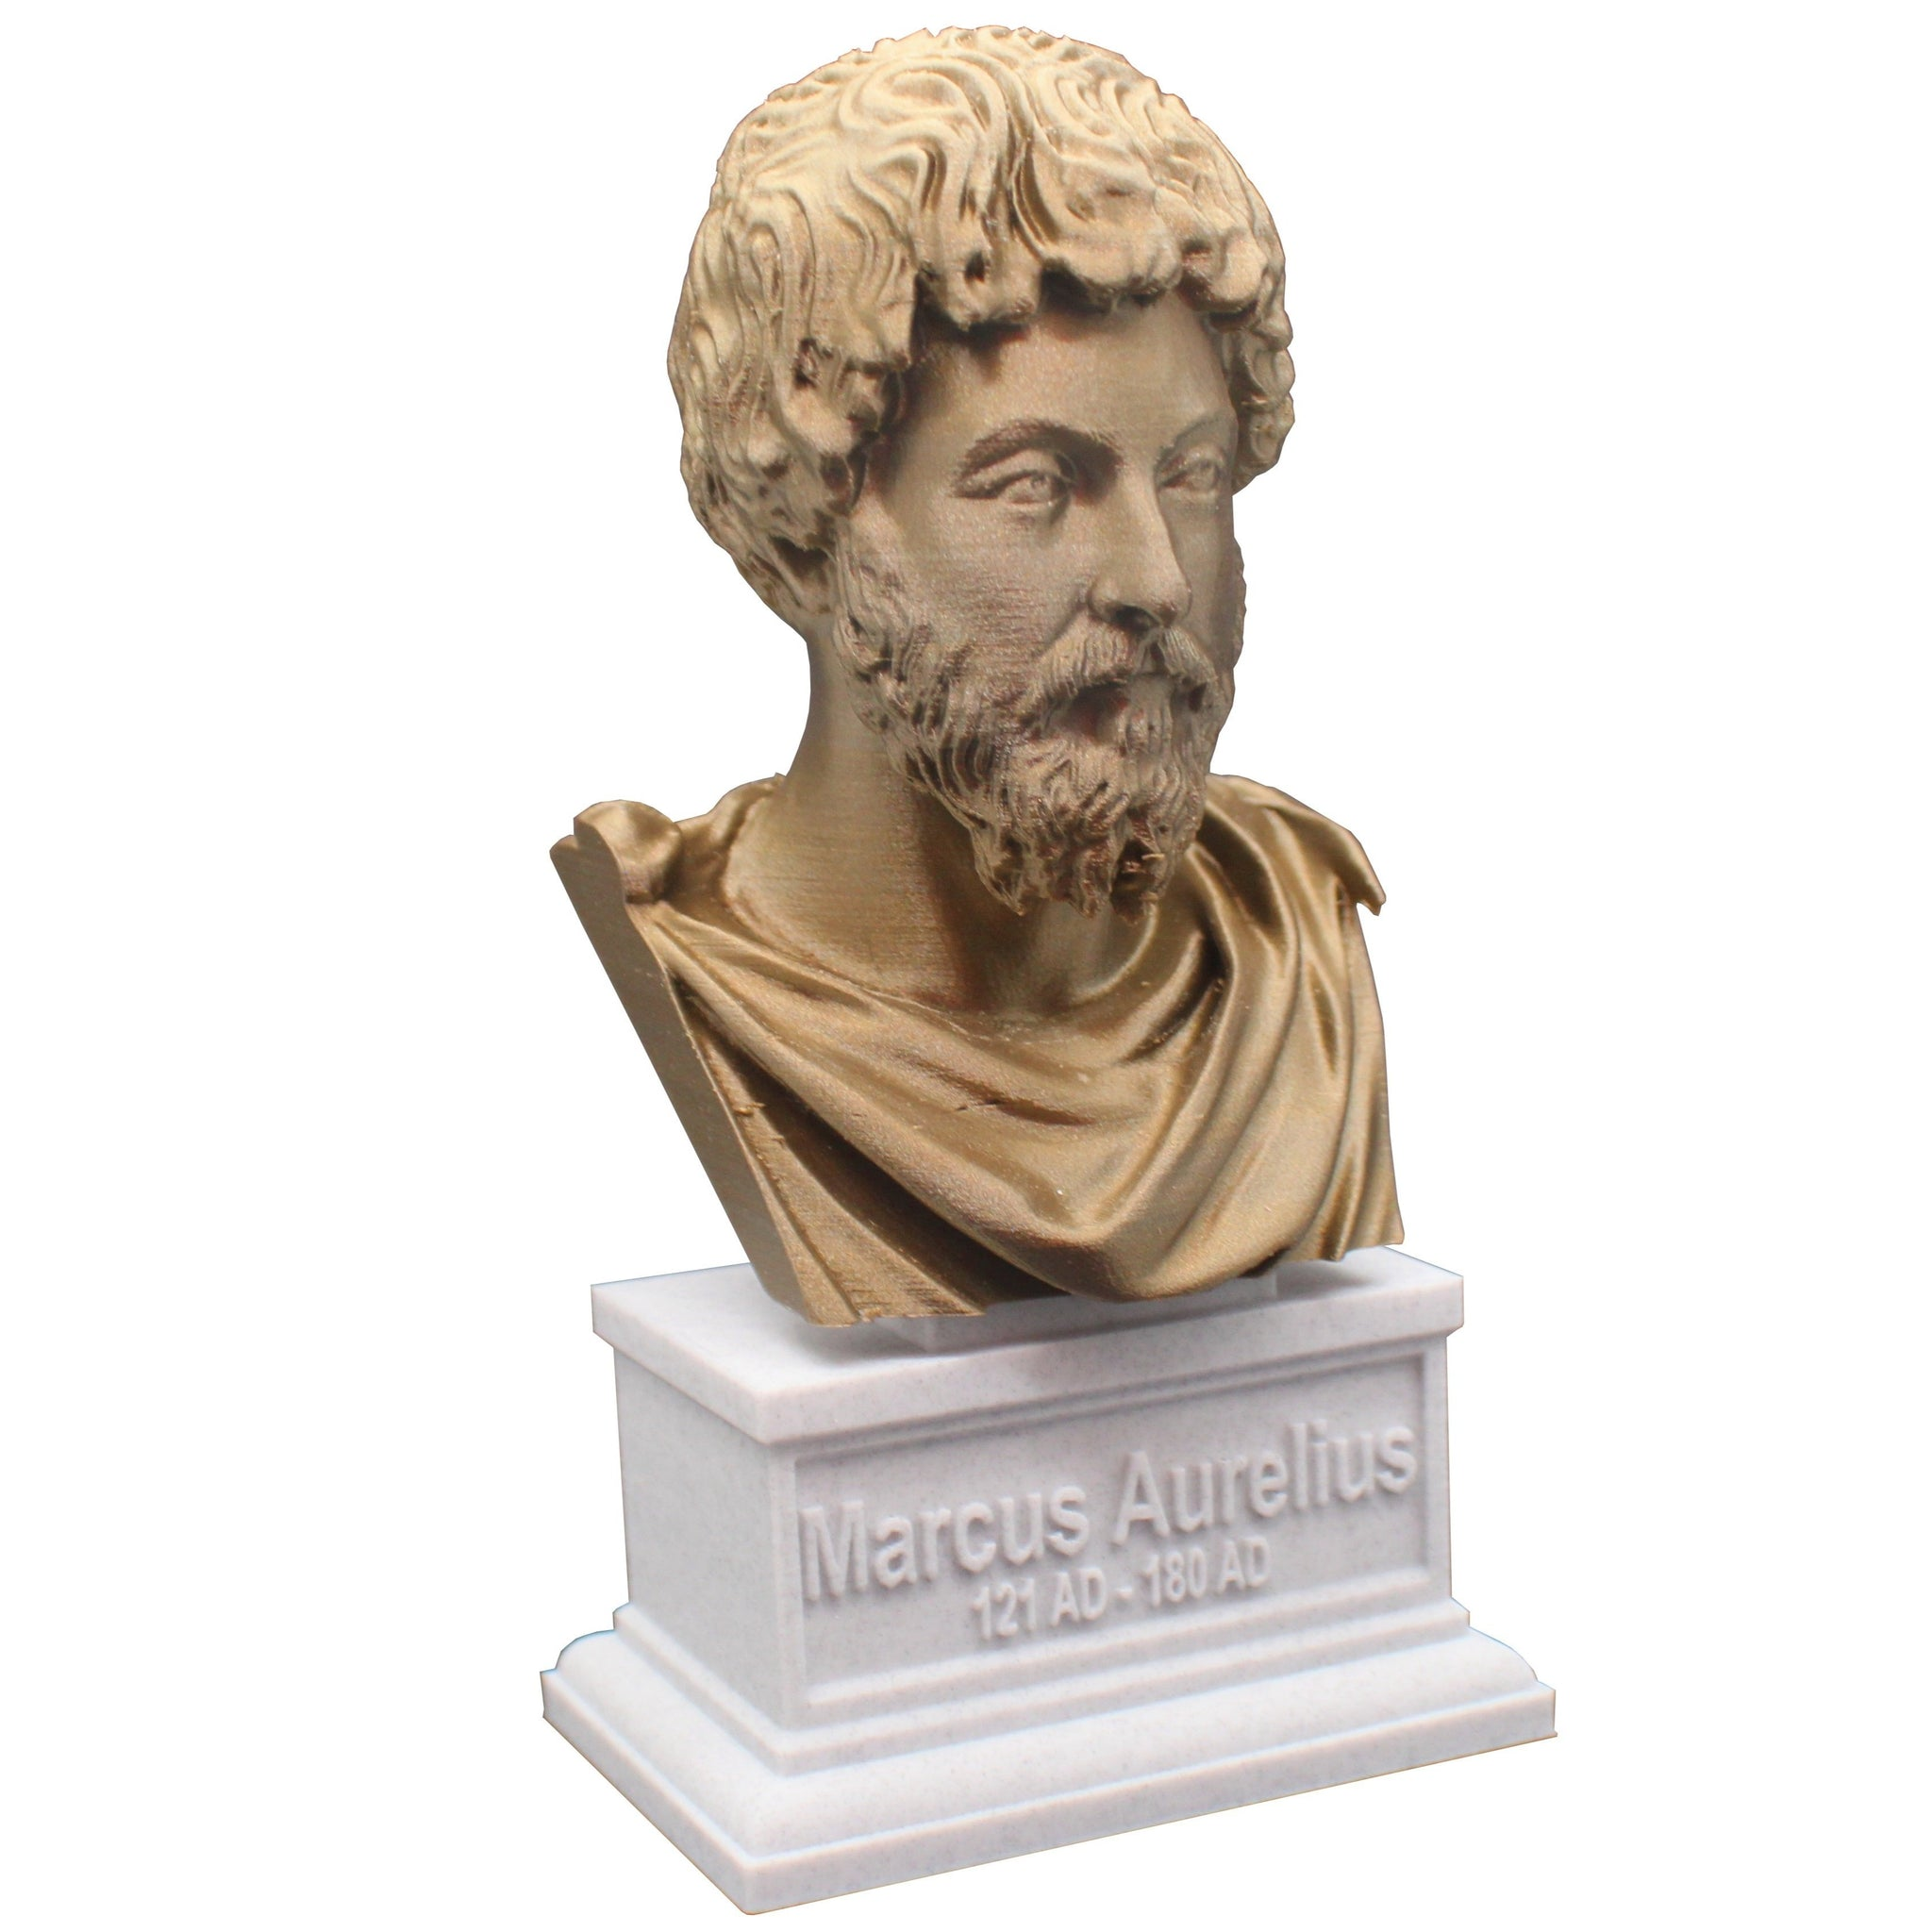 Marcus Aurelius Roman Emperor and Philosopher Sculpture Bust on Box Plinth